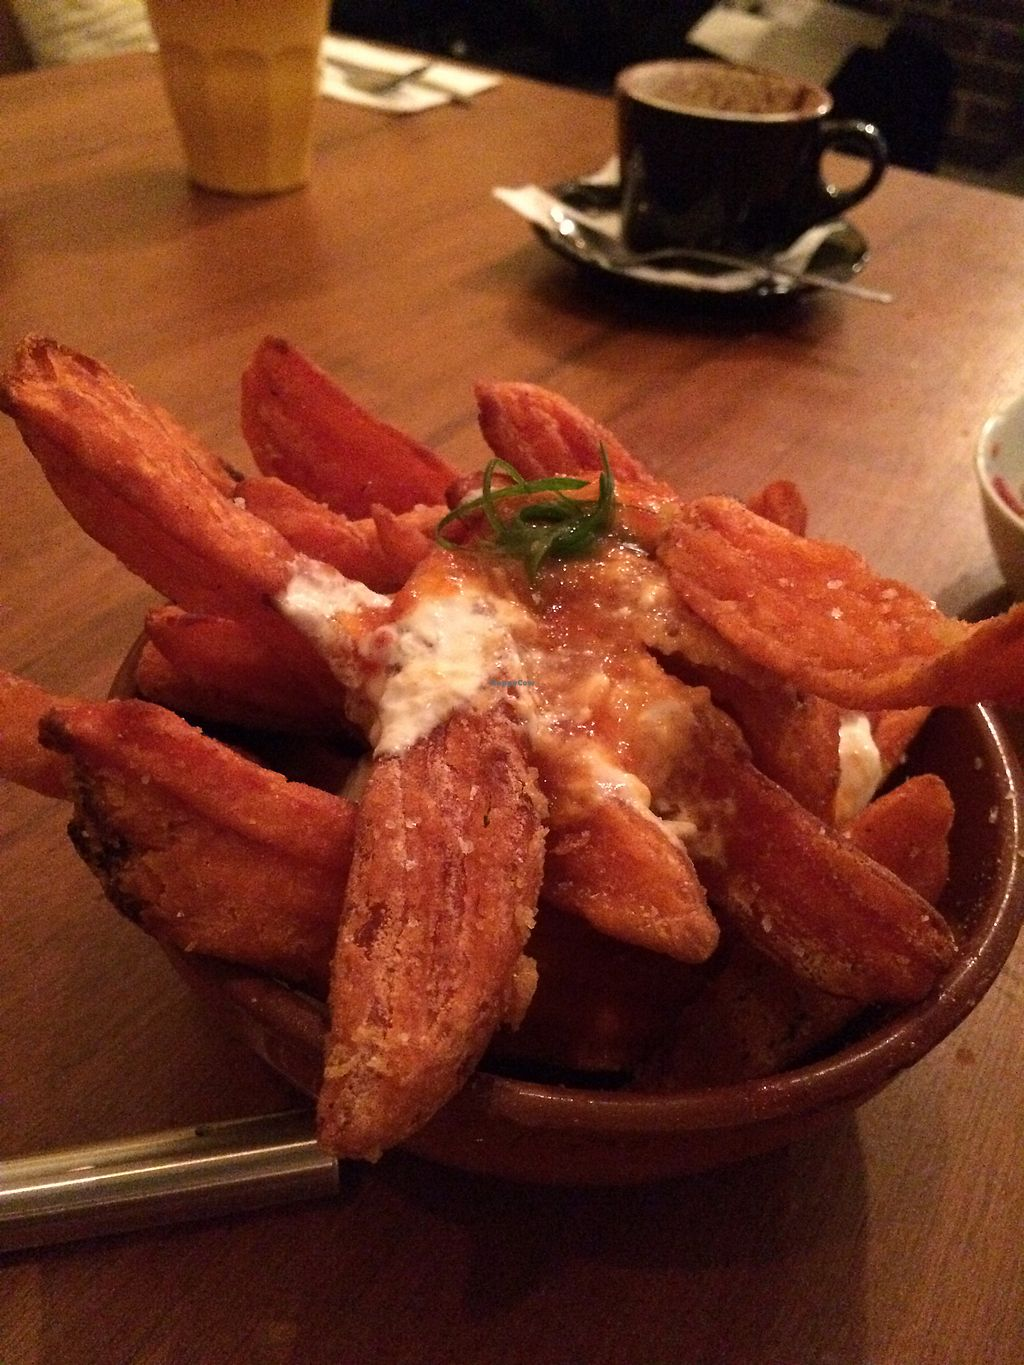 """Photo of Lemon and Thyme  by <a href=""""/members/profile/AndyV"""">AndyV</a> <br/>handmade sweet potato wedges with chilli jam <br/> July 9, 2017  - <a href='/contact/abuse/image/70569/278034'>Report</a>"""